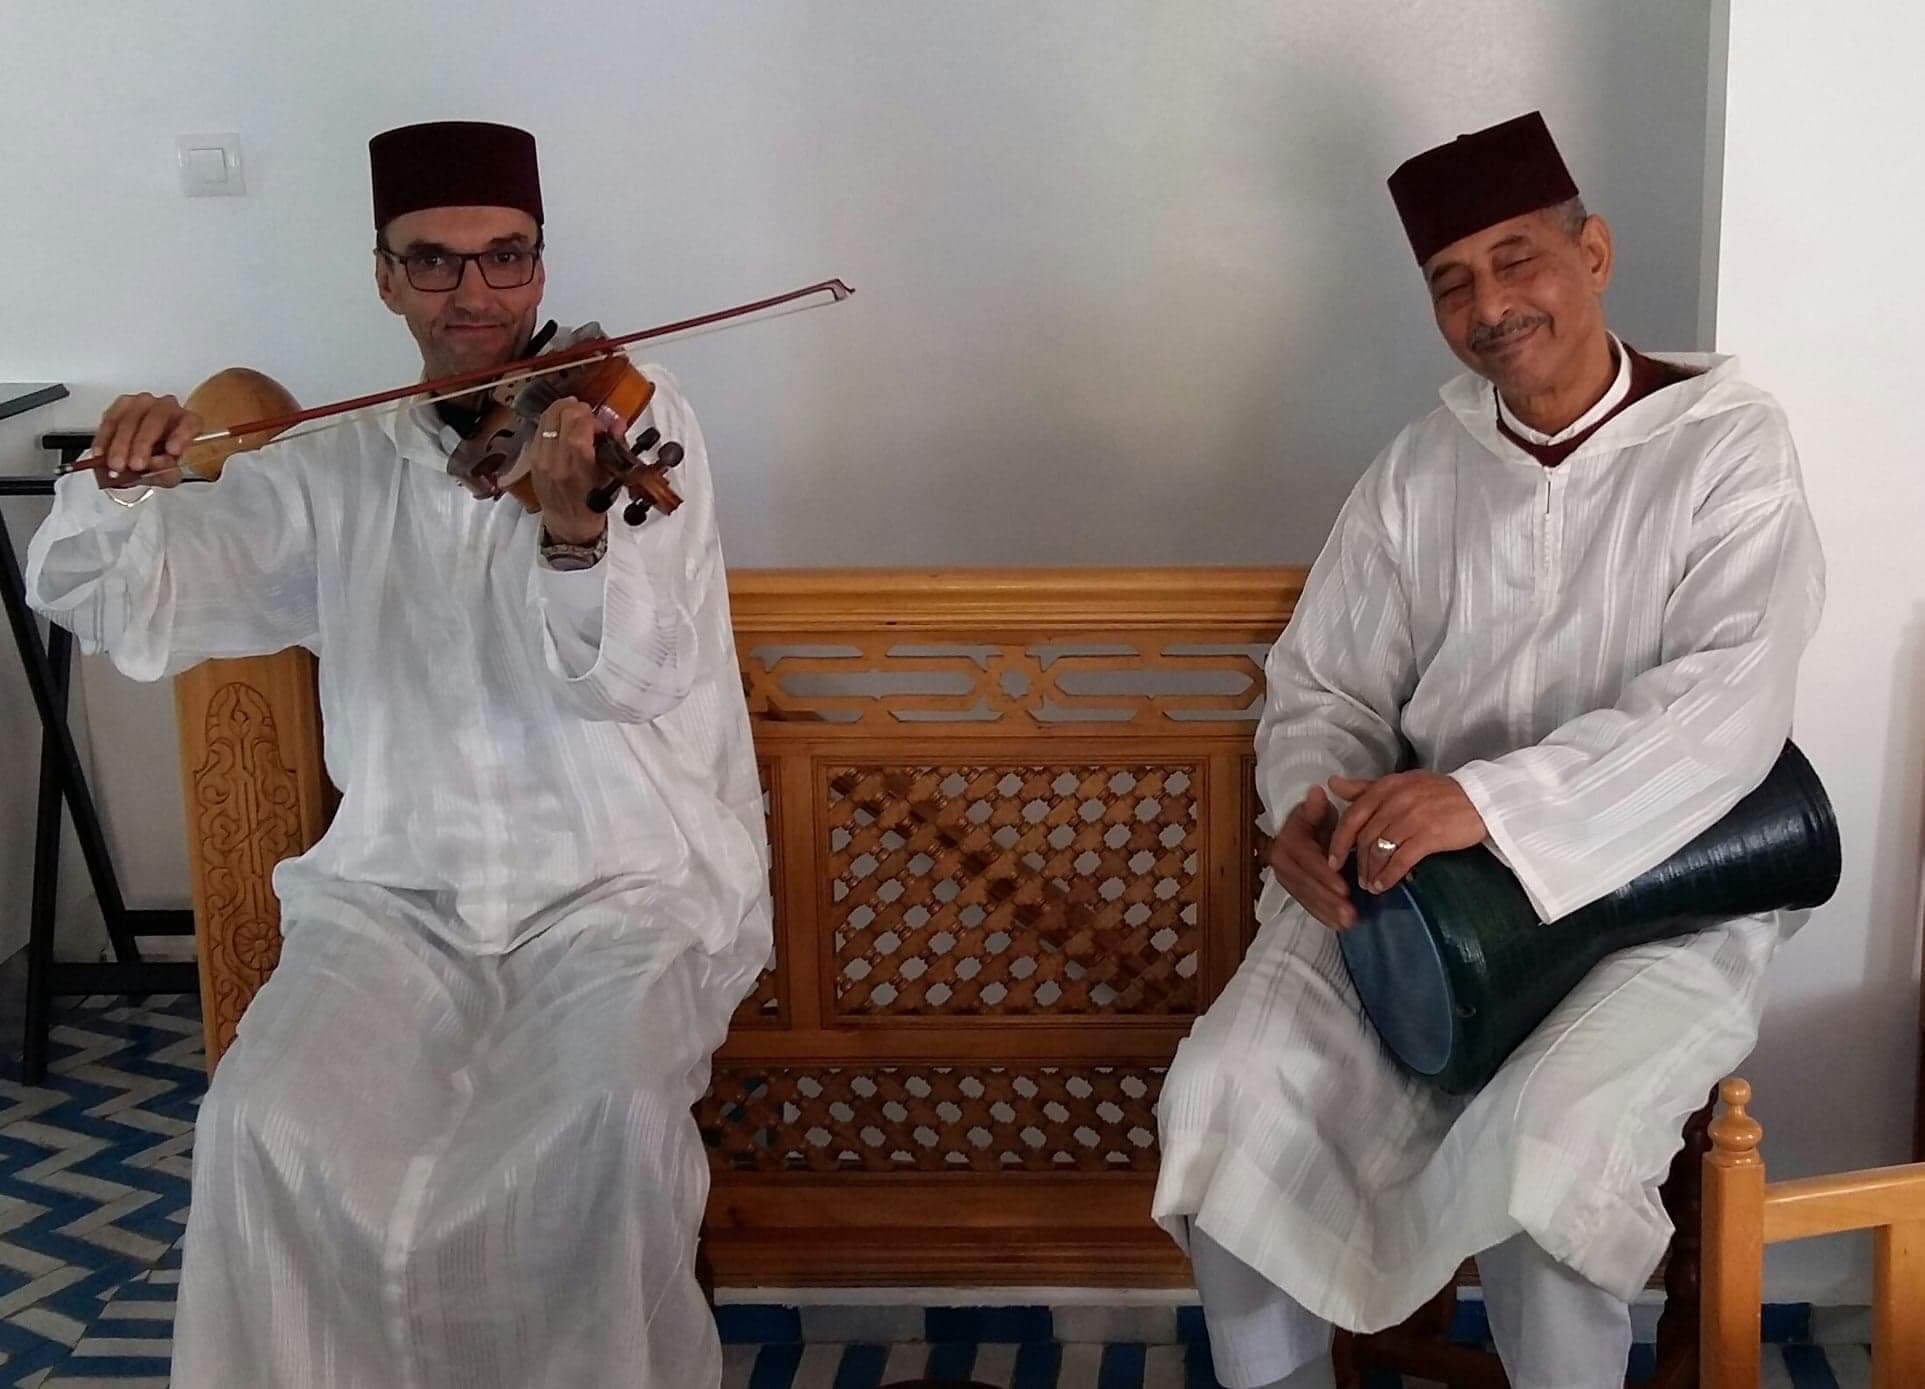 Musicians in a typical Restaurant in Tangier